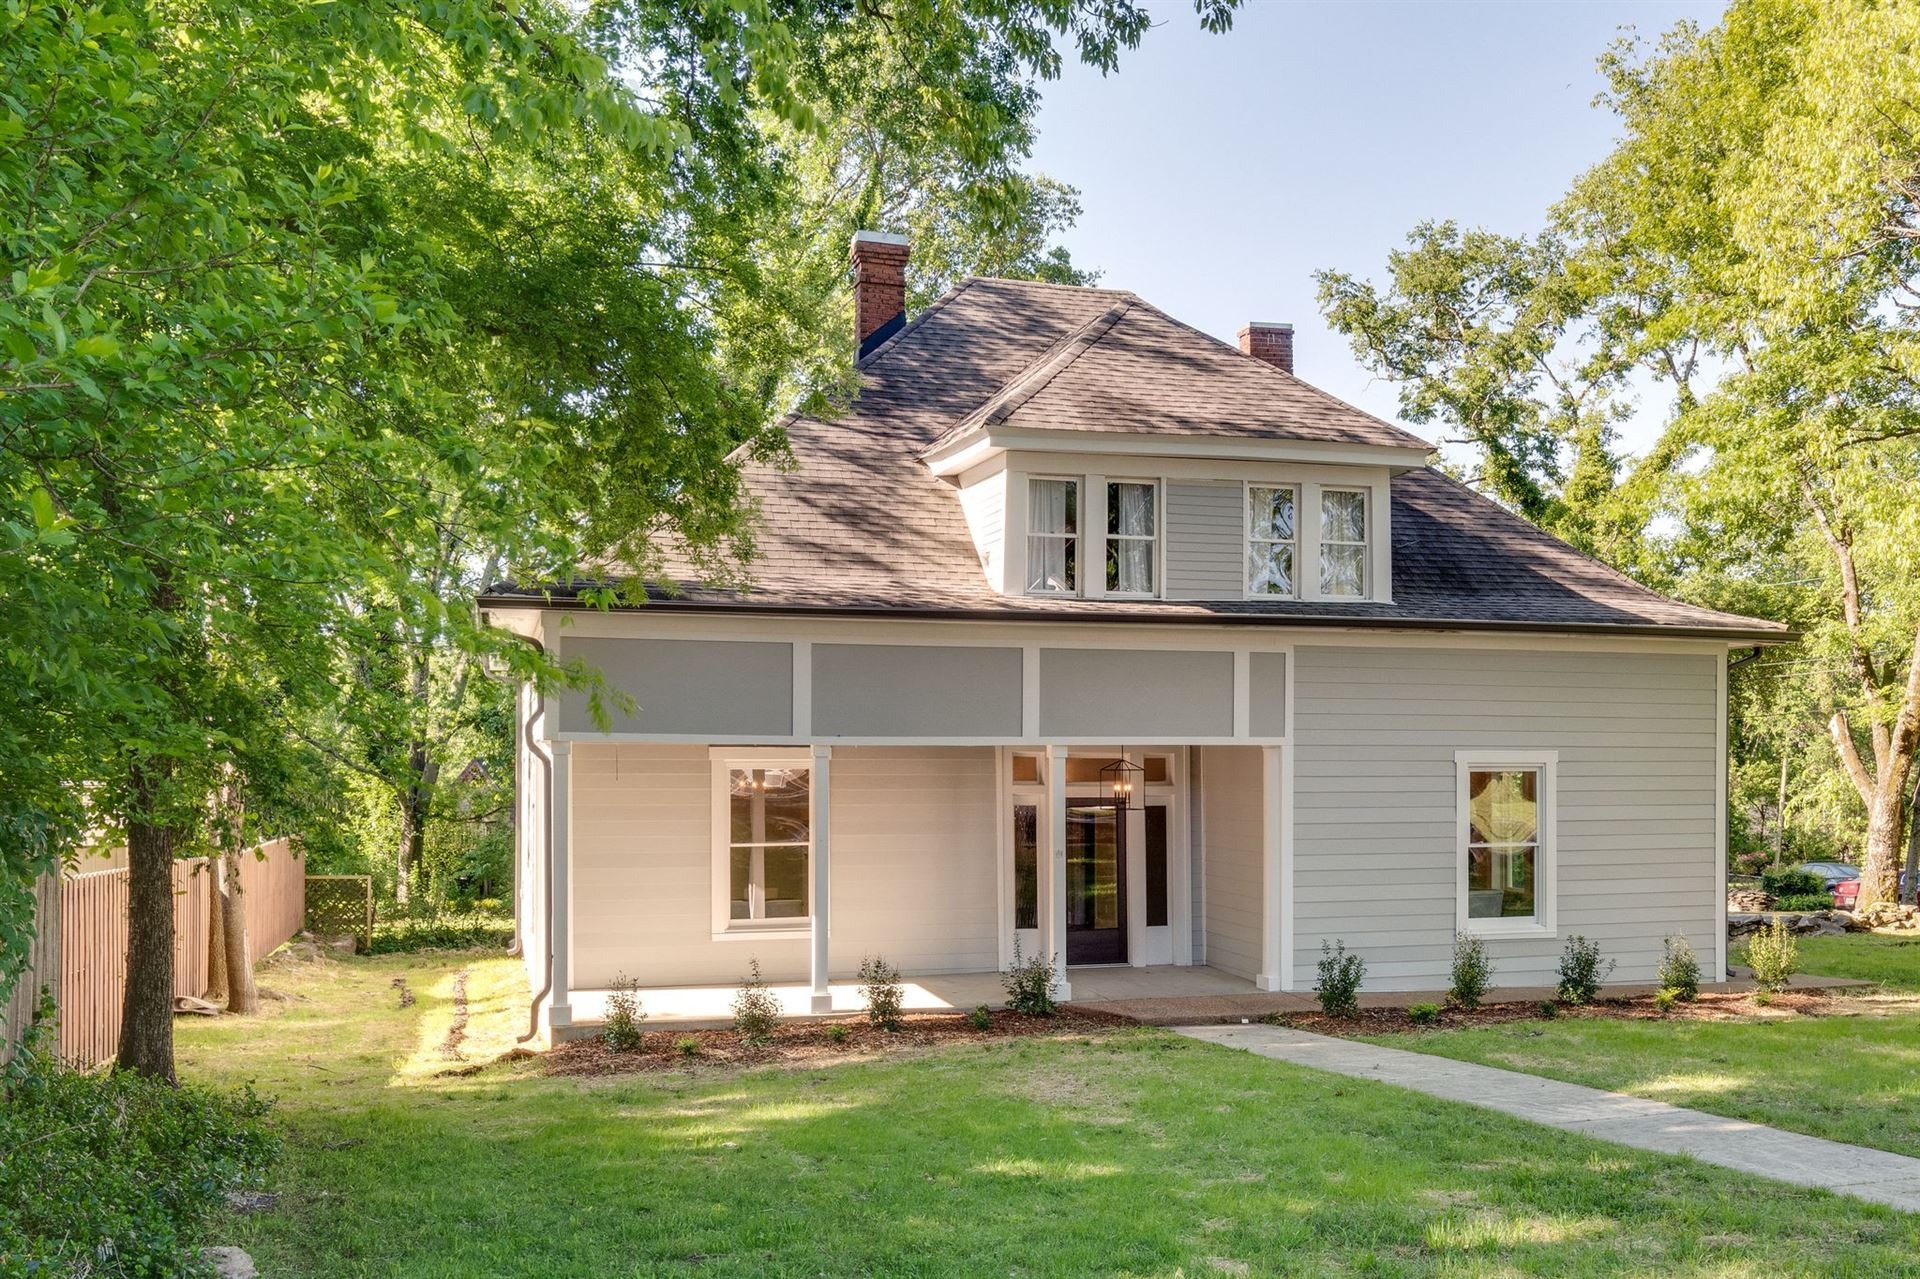 Photo of 713 Trotwood Ave, Columbia, TN 38401 (MLS # 2169381)